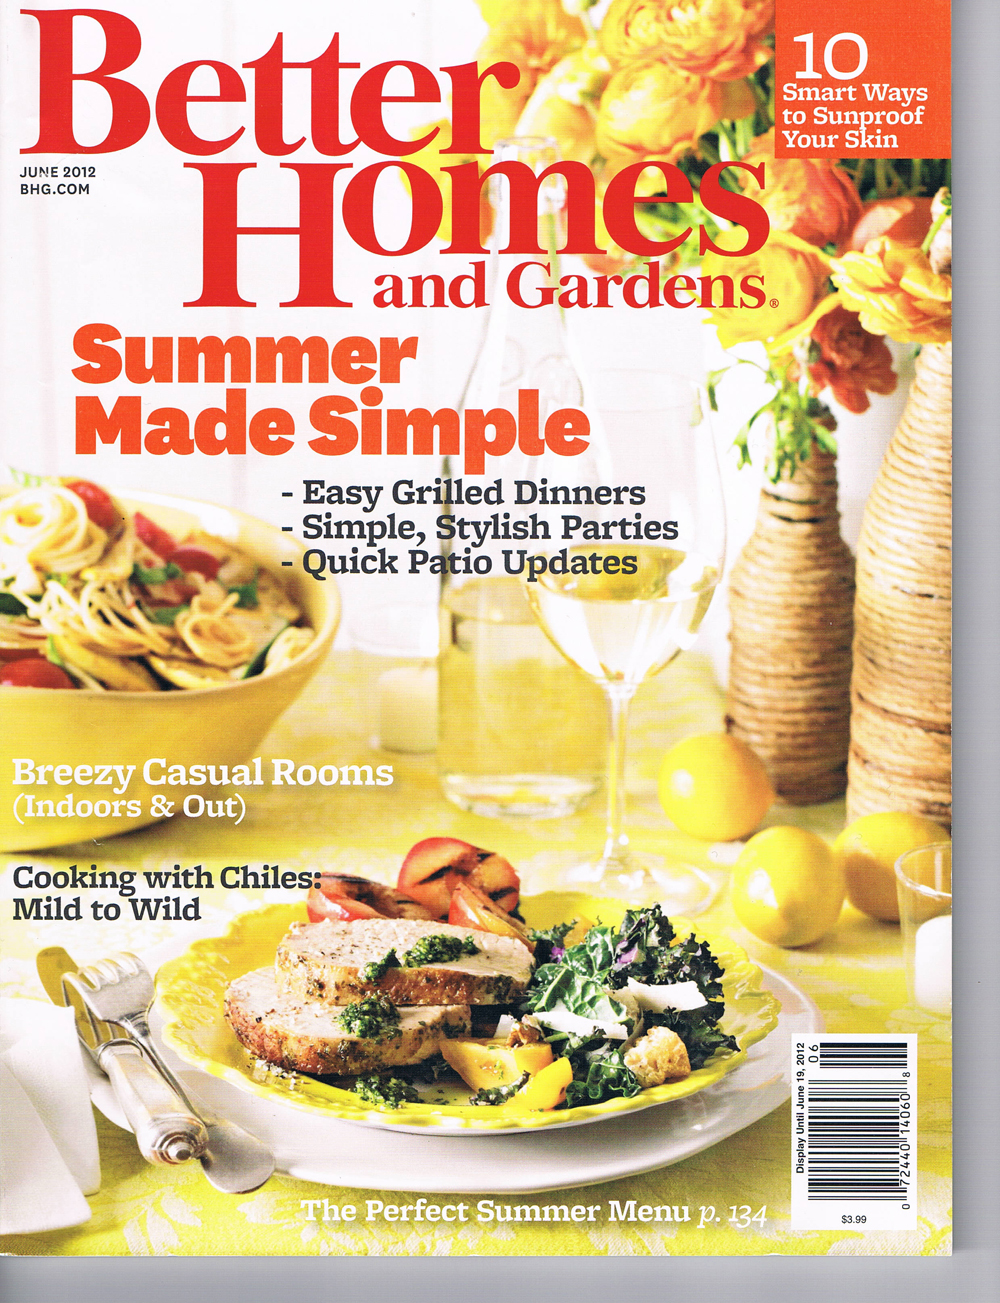 Better Homes Cover - June 2012